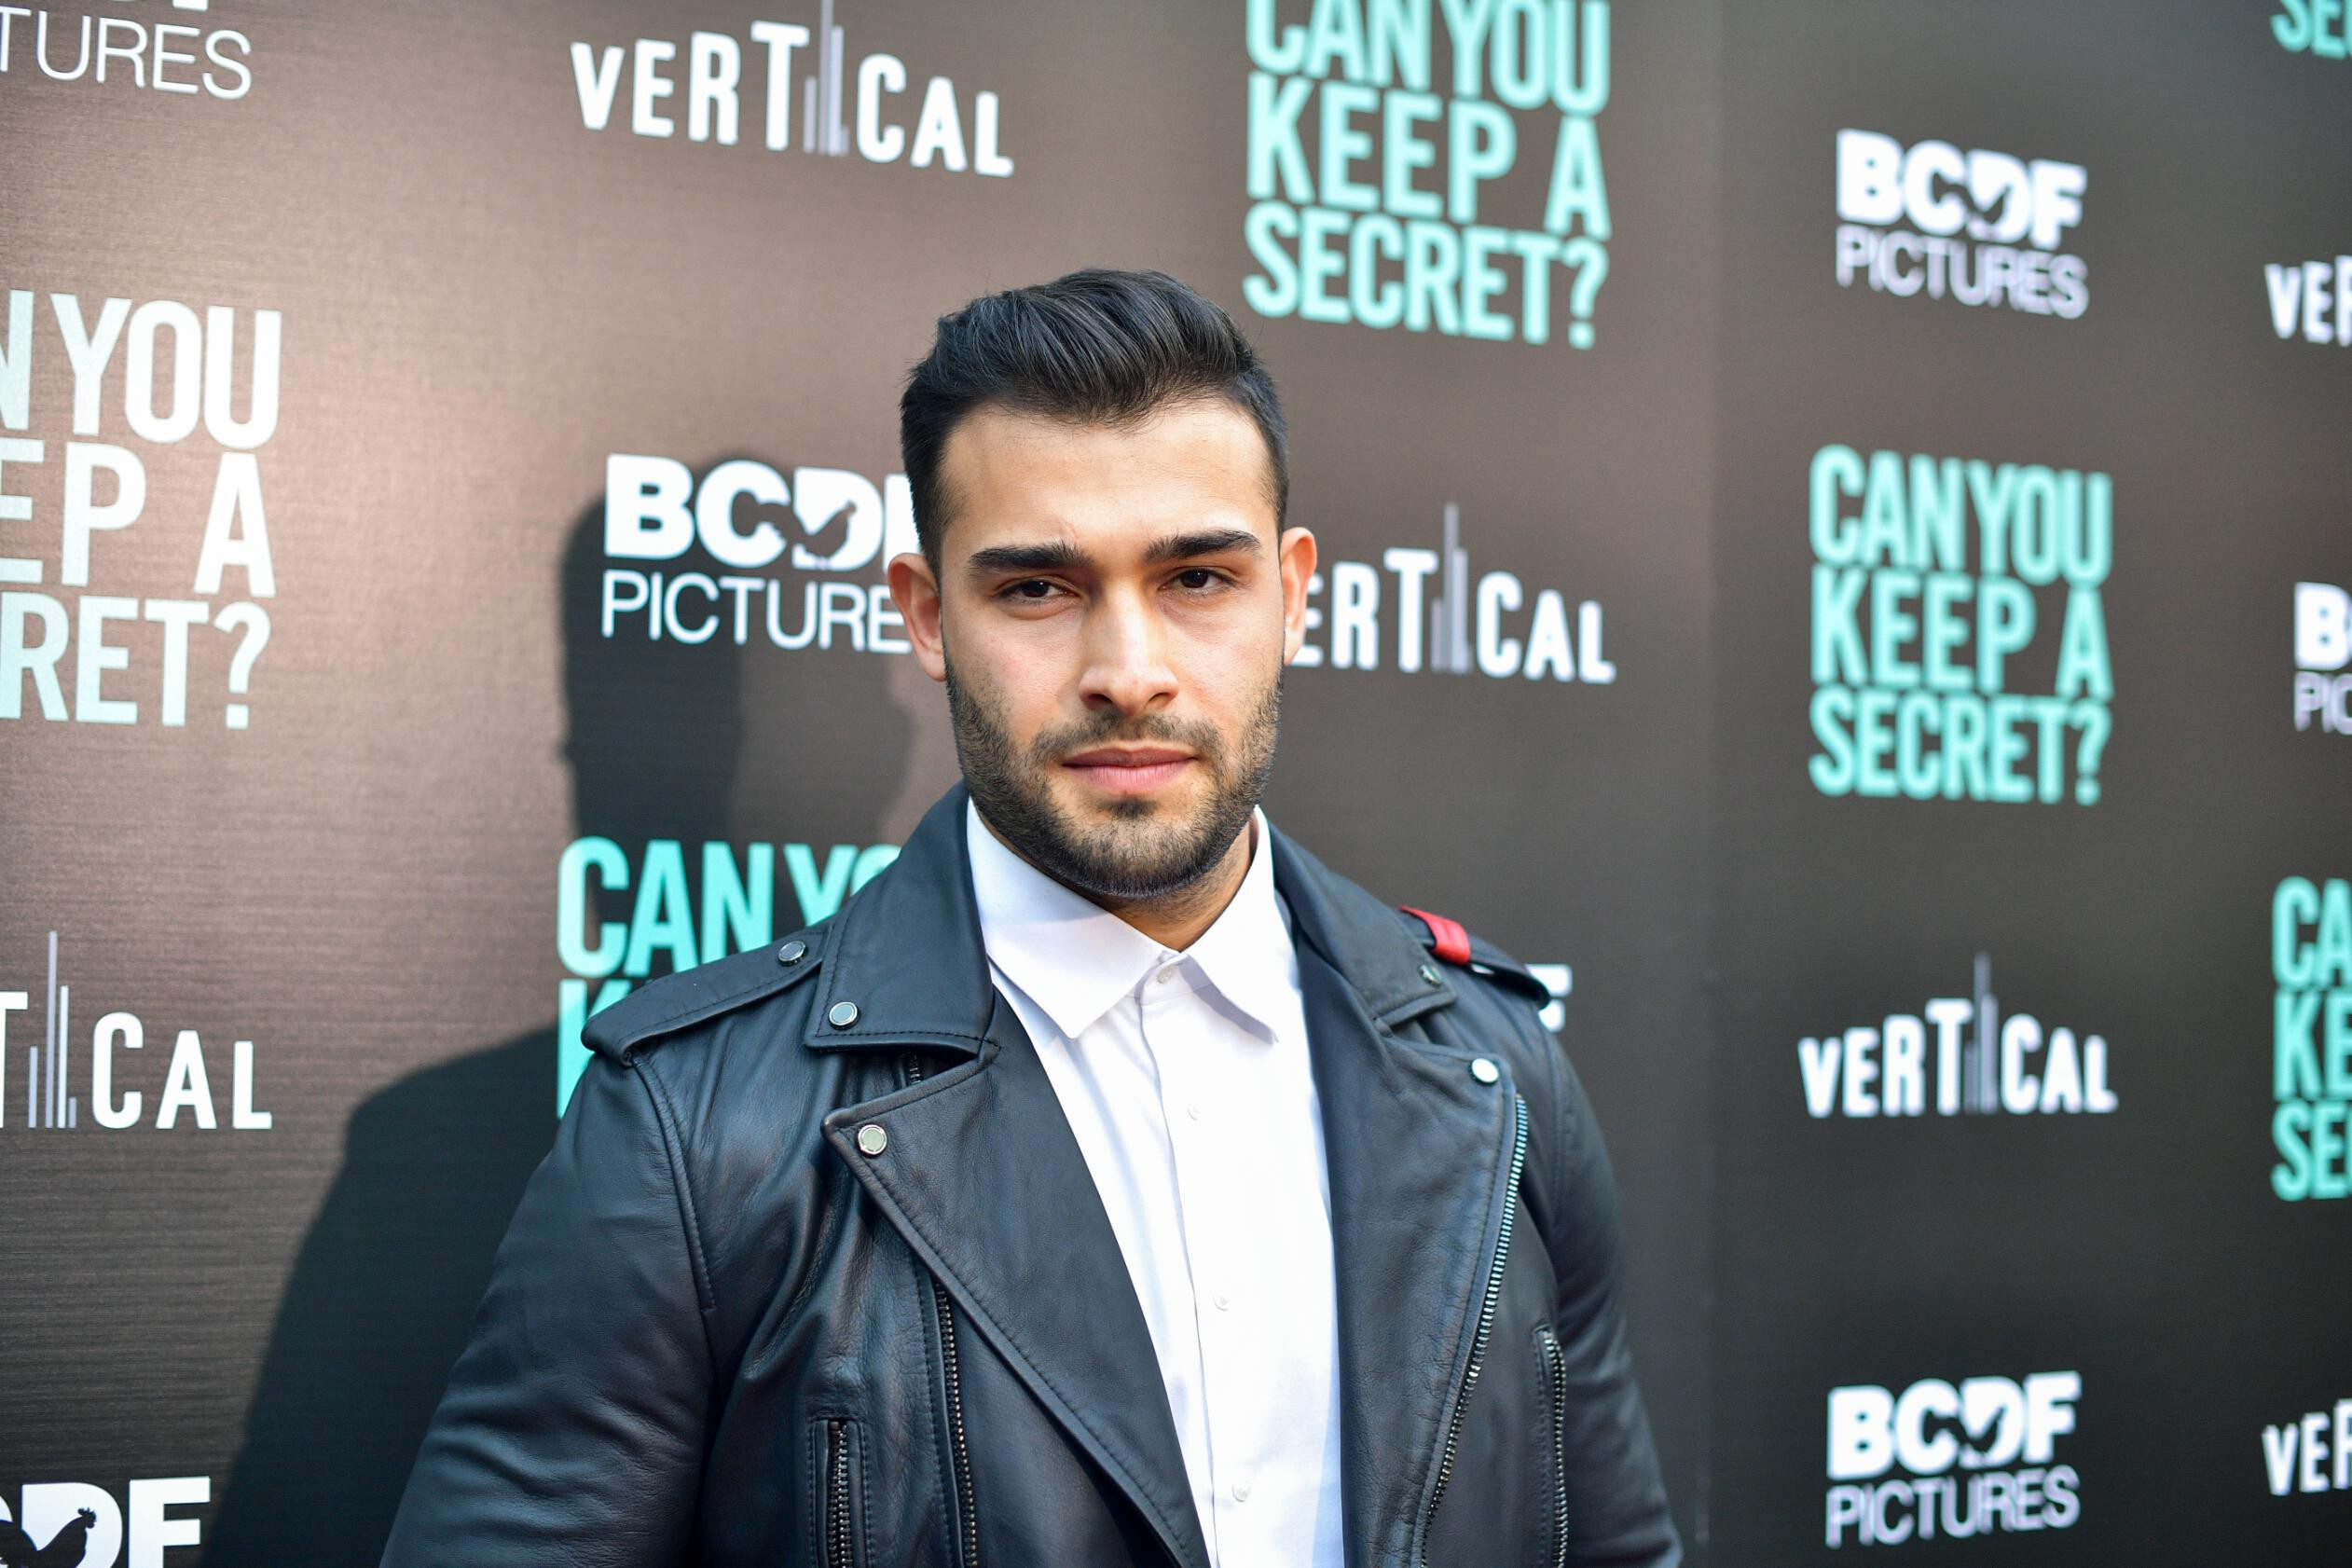 <i>Matt Winkelmeyer/Getty Images</i><br/>Sam Asghari and Britney Spears are now engaged.